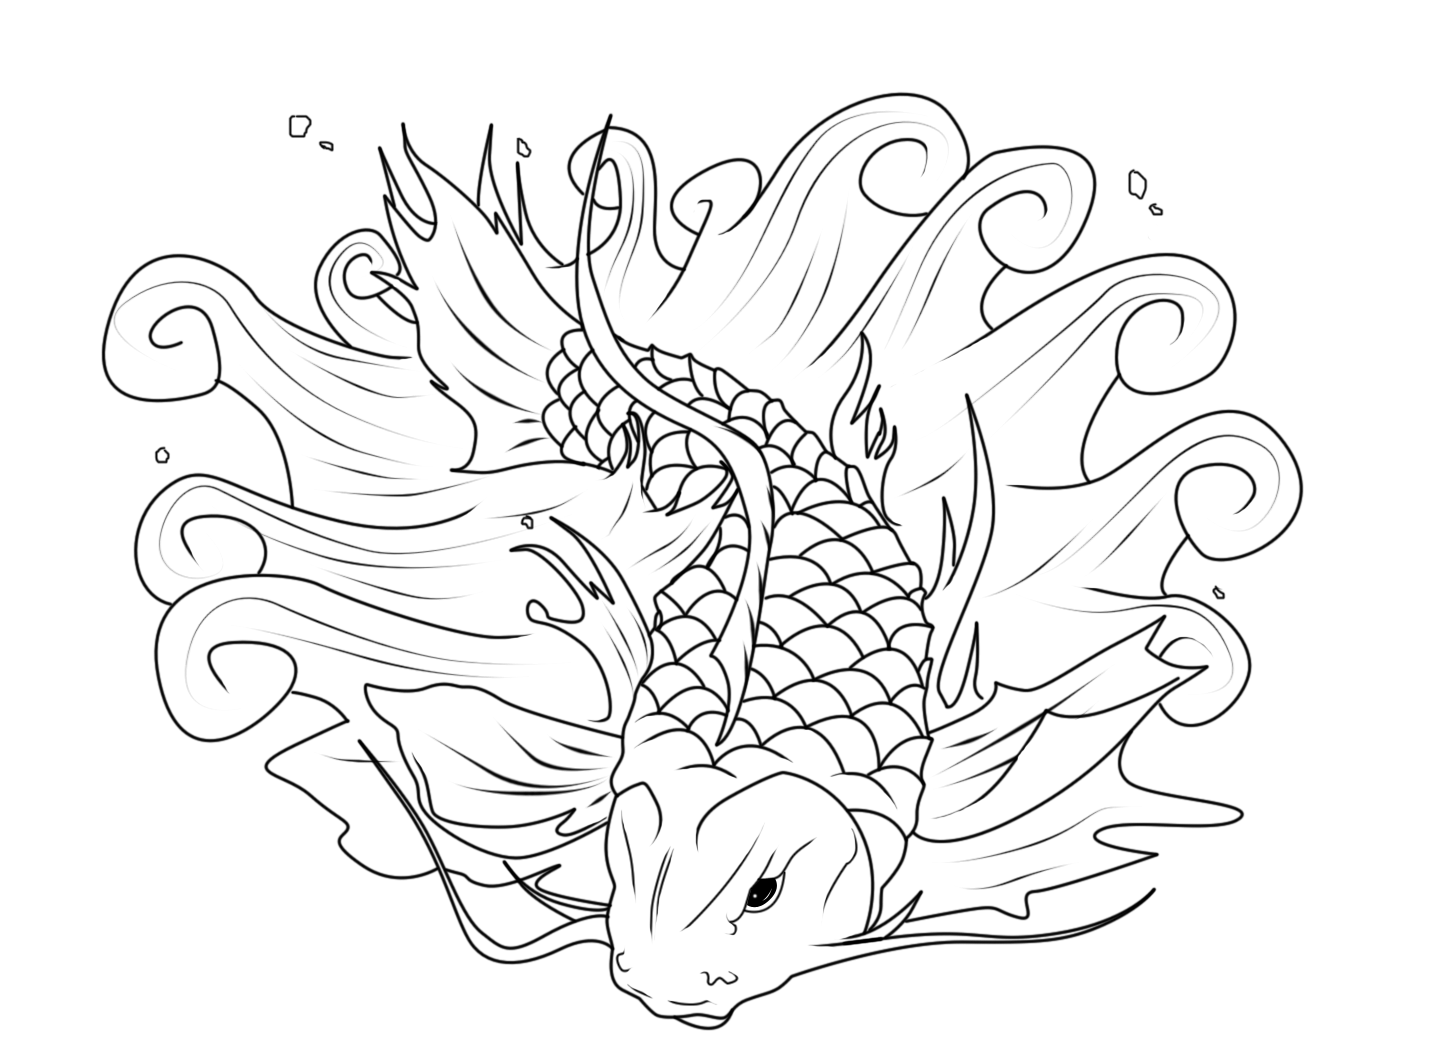 1445x1047 Koi Fish Coloring Pages To Download And Print For Free Mosaic